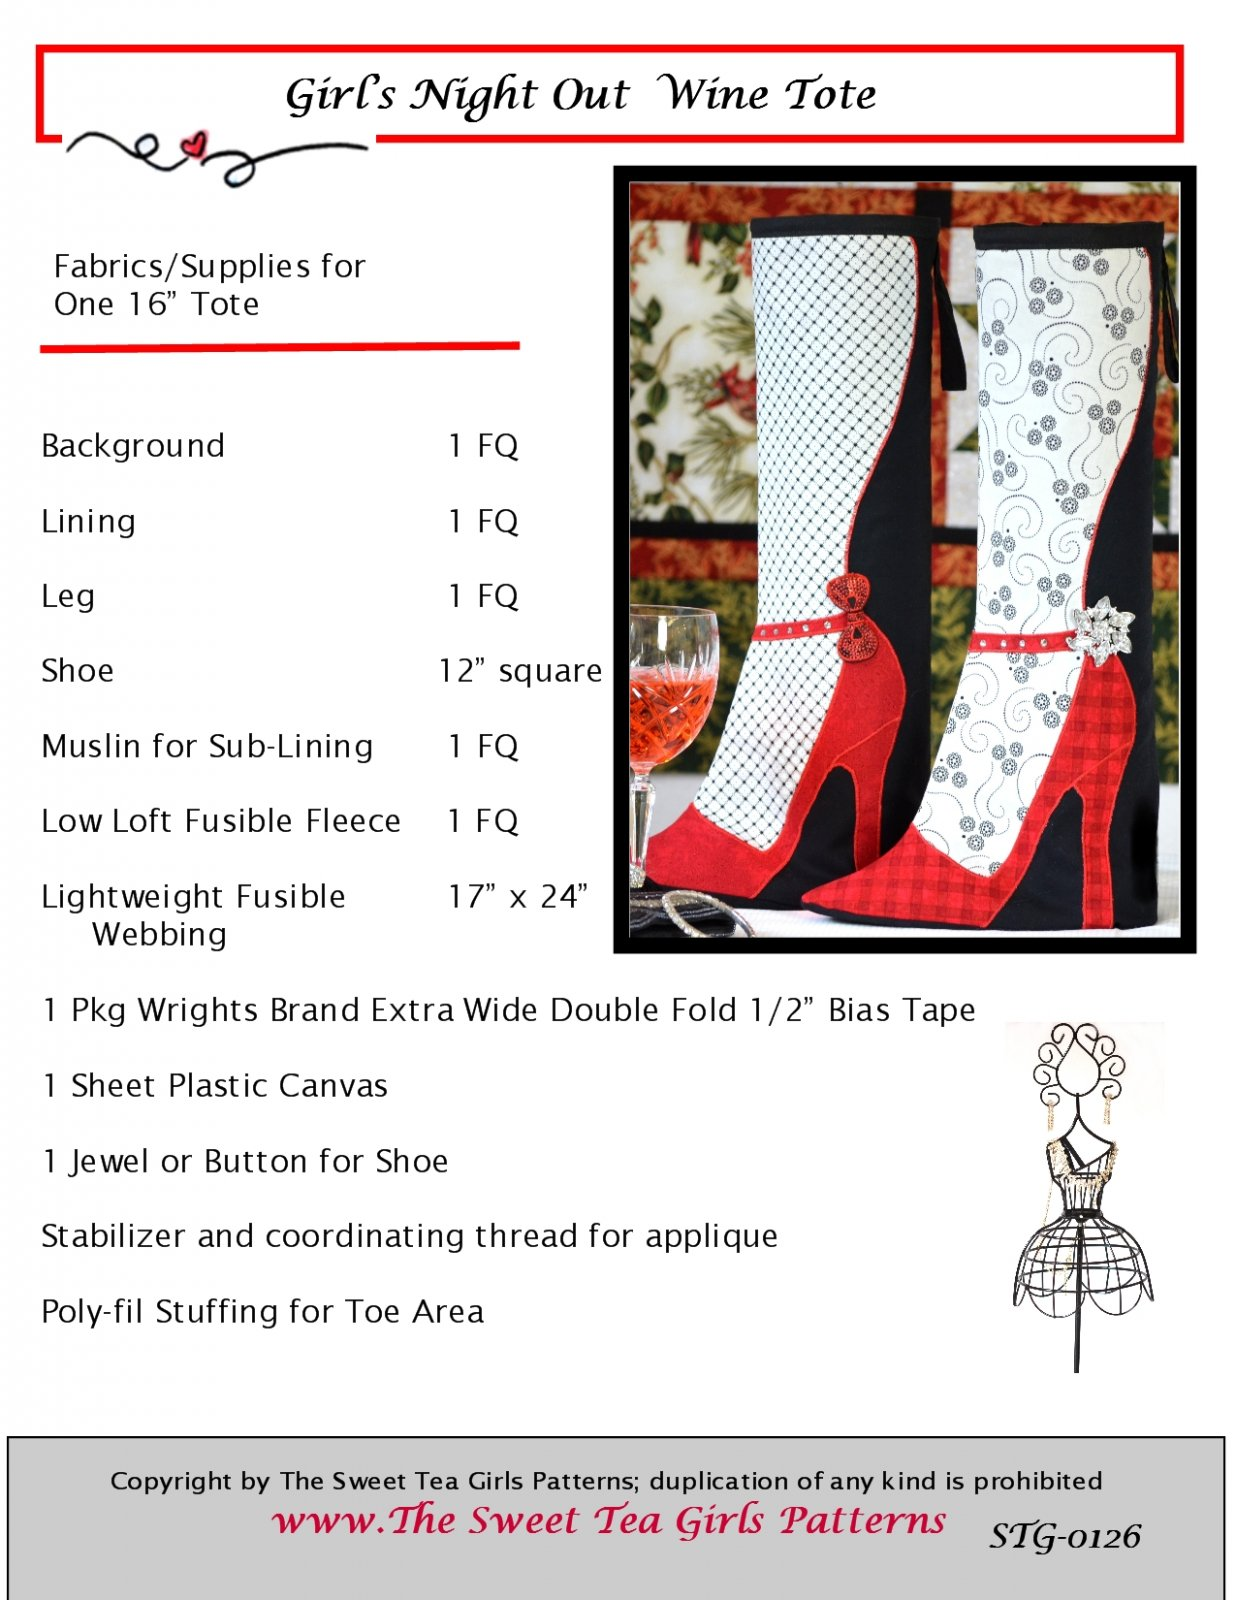 Girl's Night Out - Downloadable PDF